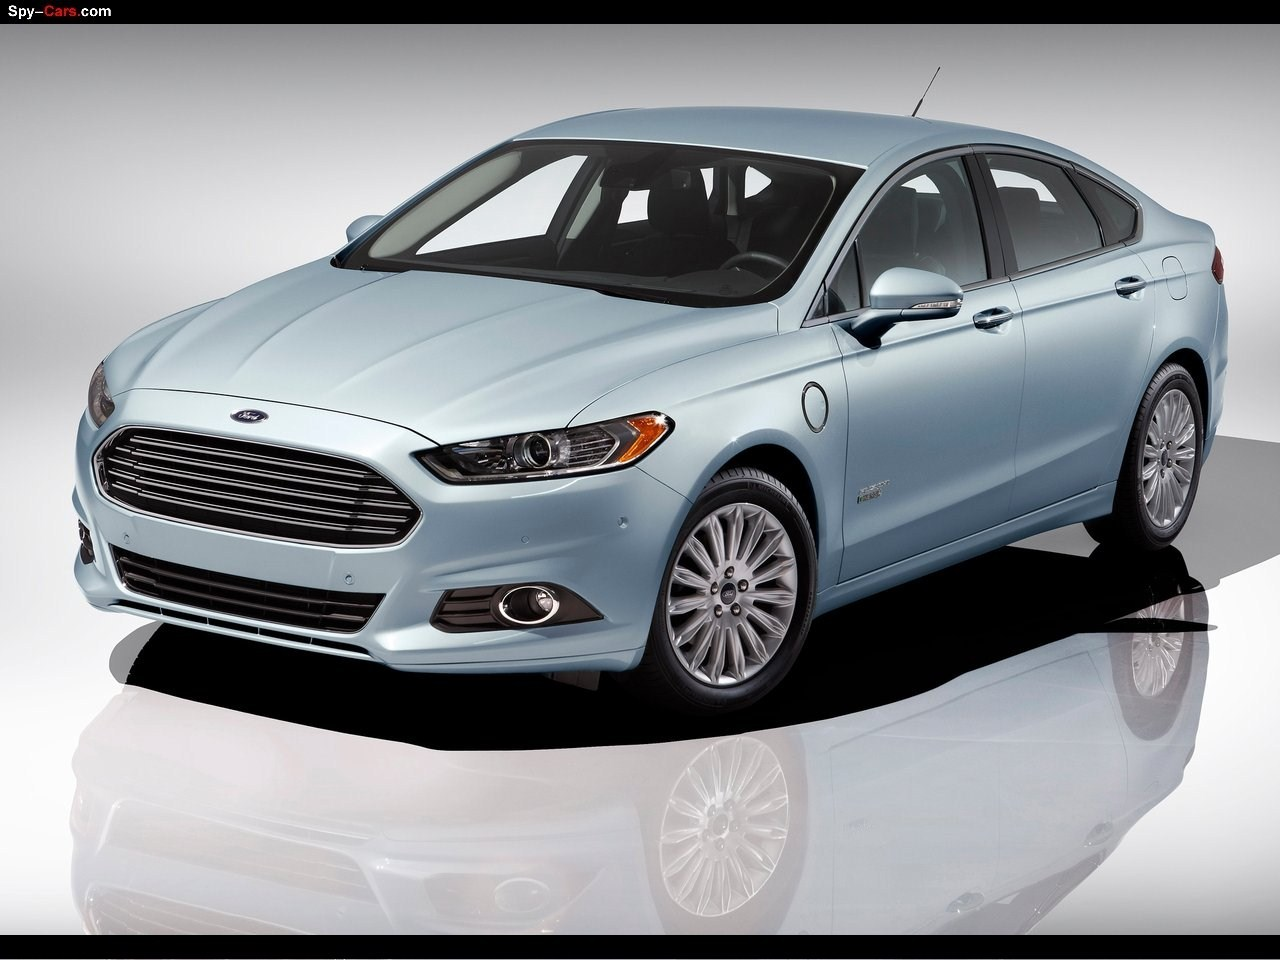 Ford Fusion Energi Spy Photos